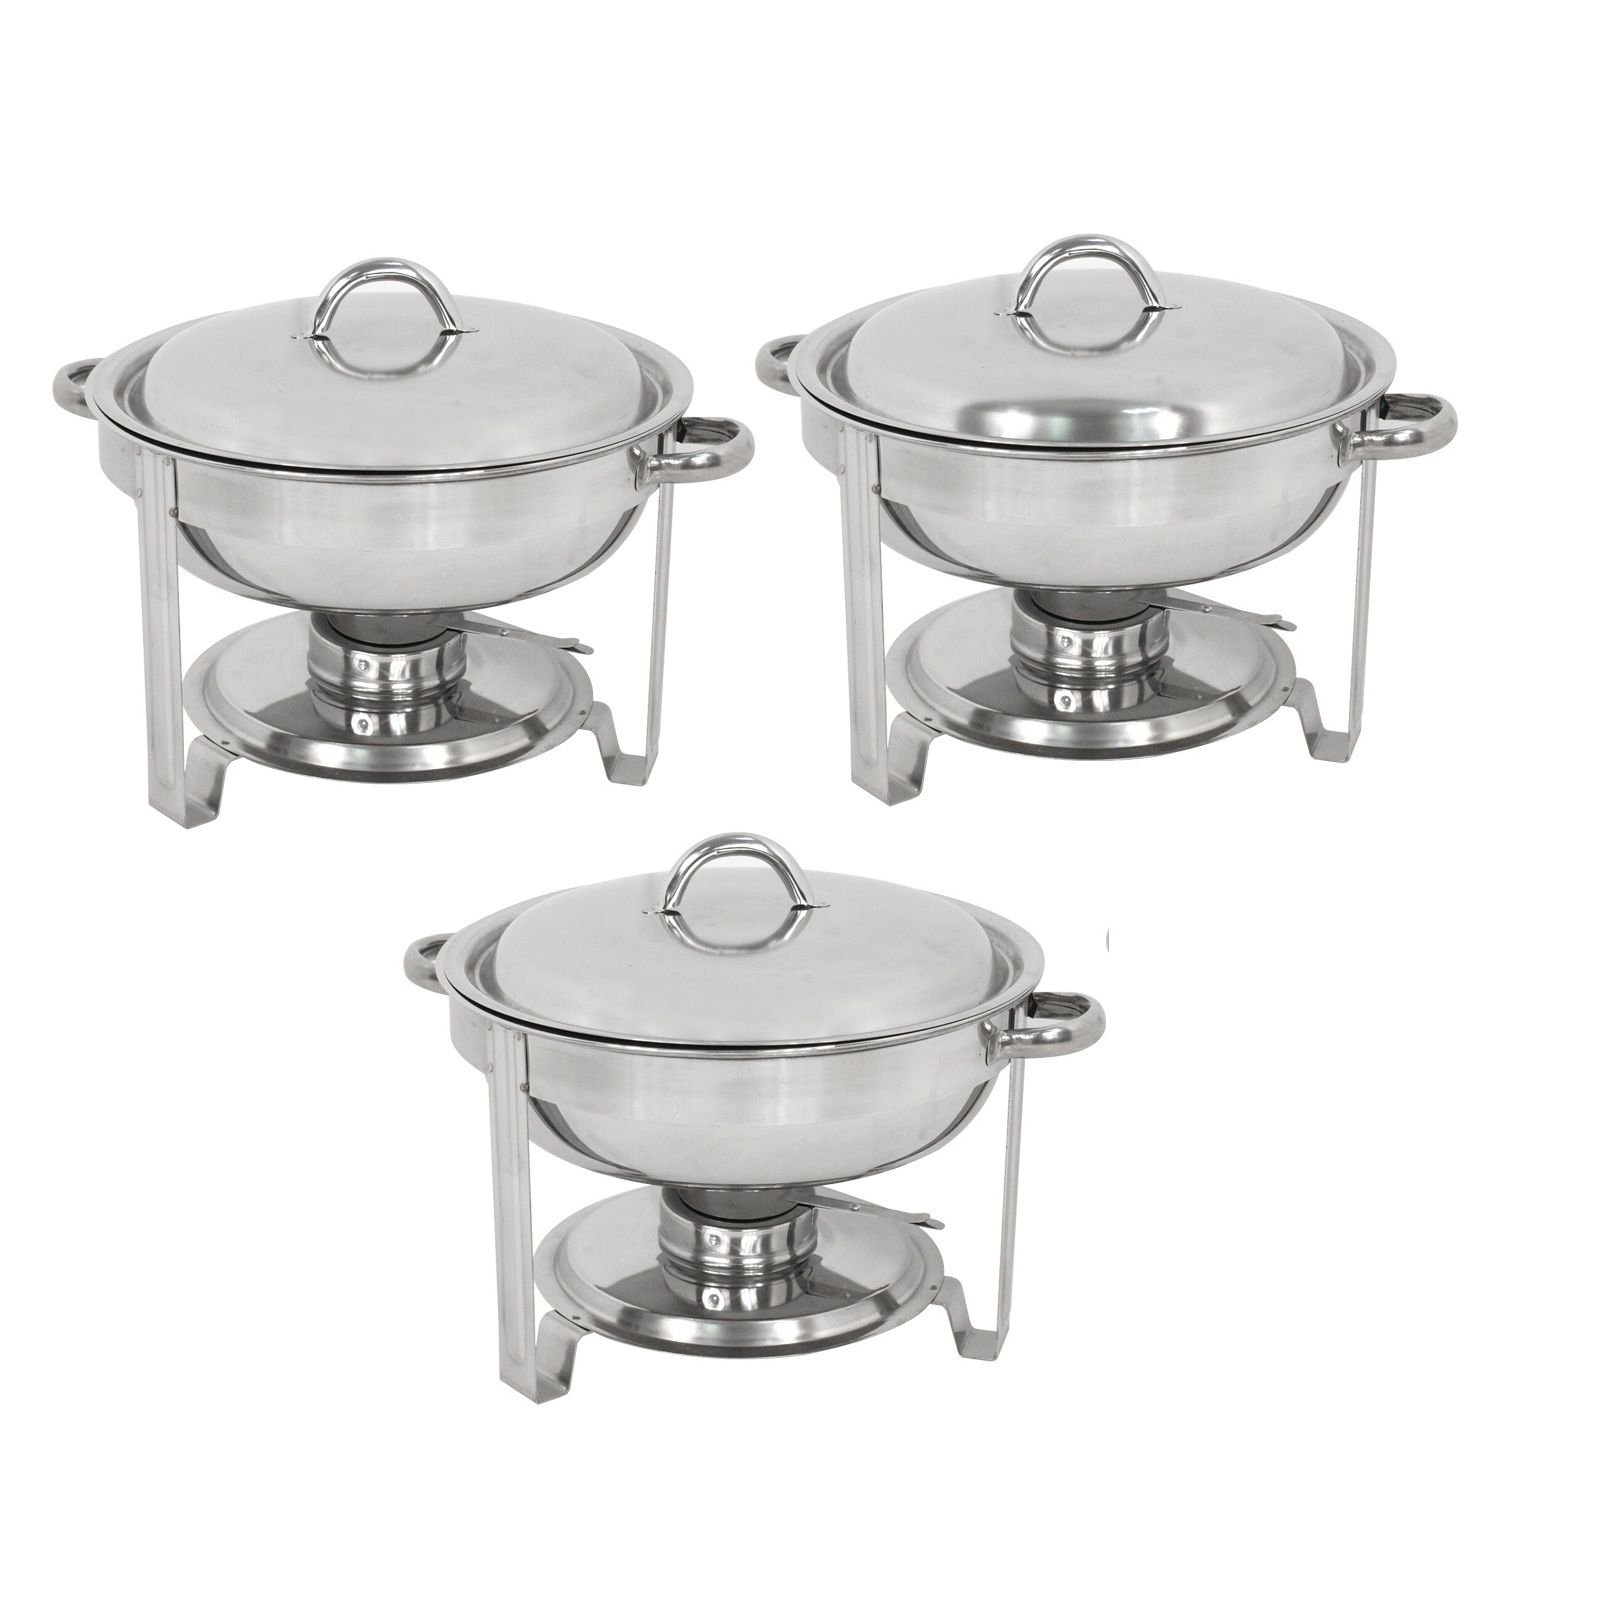 ZENY Set of 3 Round Chafing Dish 5 Quart Stainless Steel Full Size Tray Buffet Catering (3)